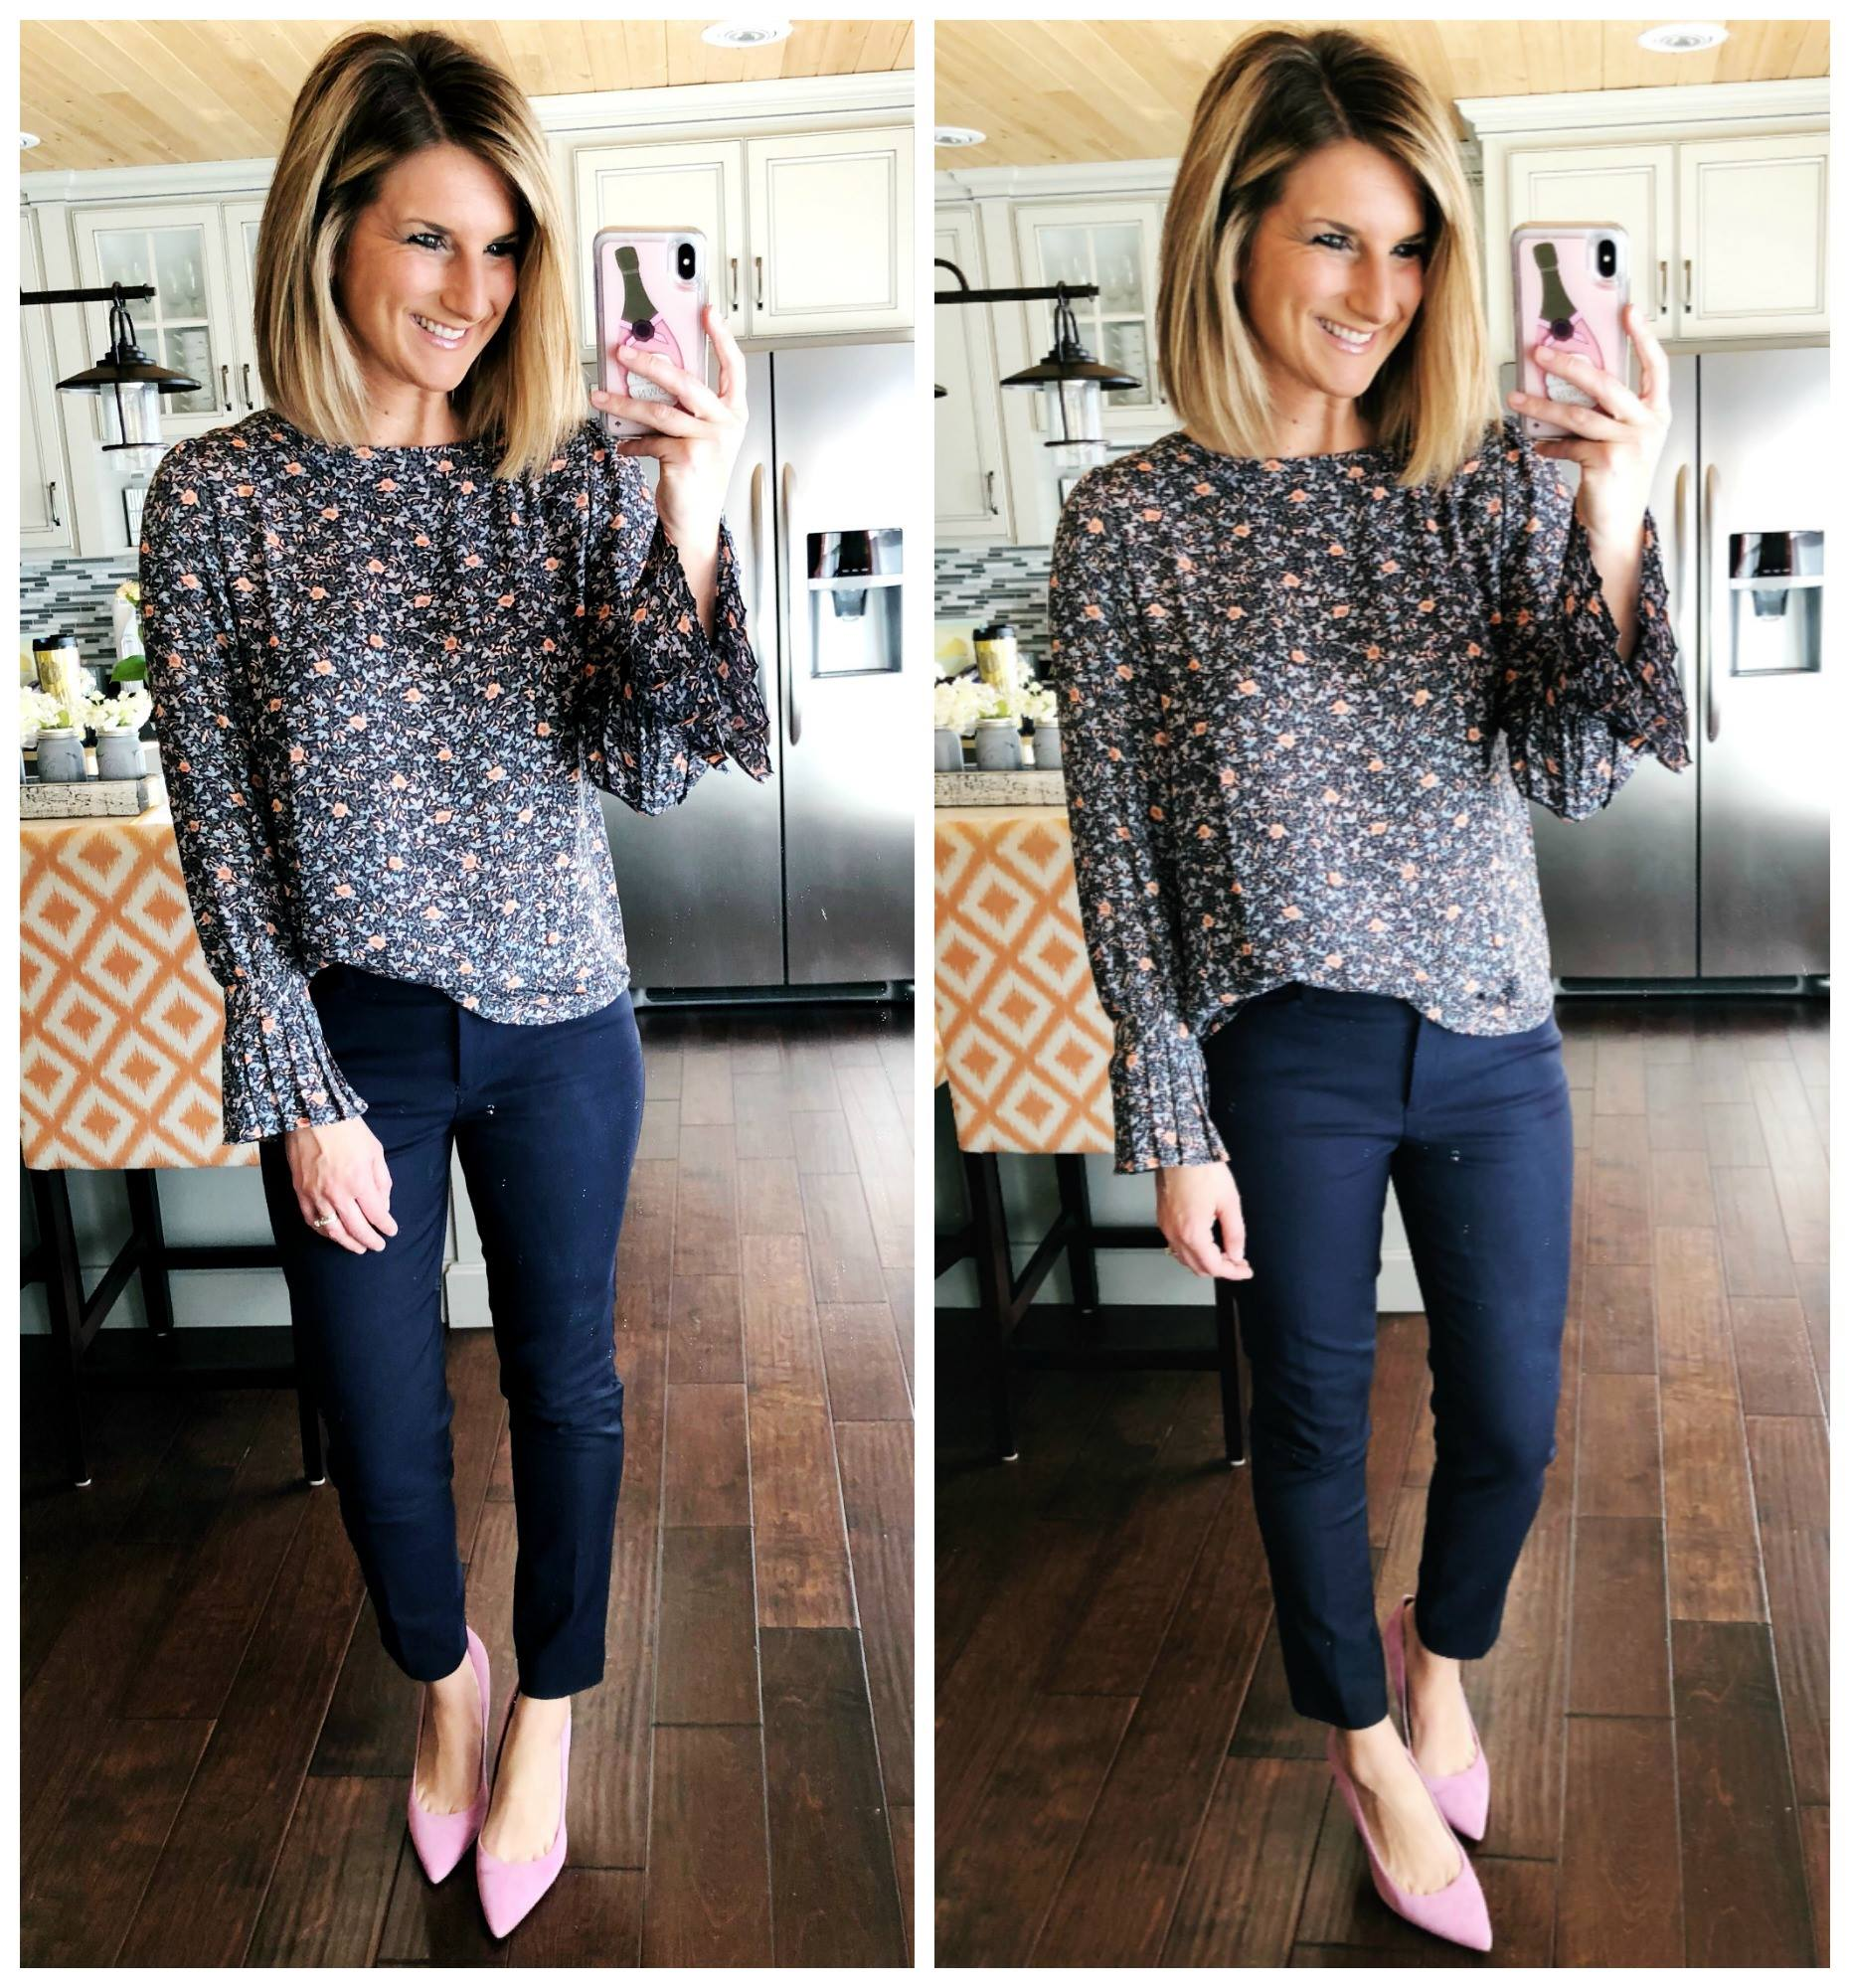 Casual Work Outfit // Work Wear // Floral Blouse + Navy Dress Pants + Heels // Spring Fashion